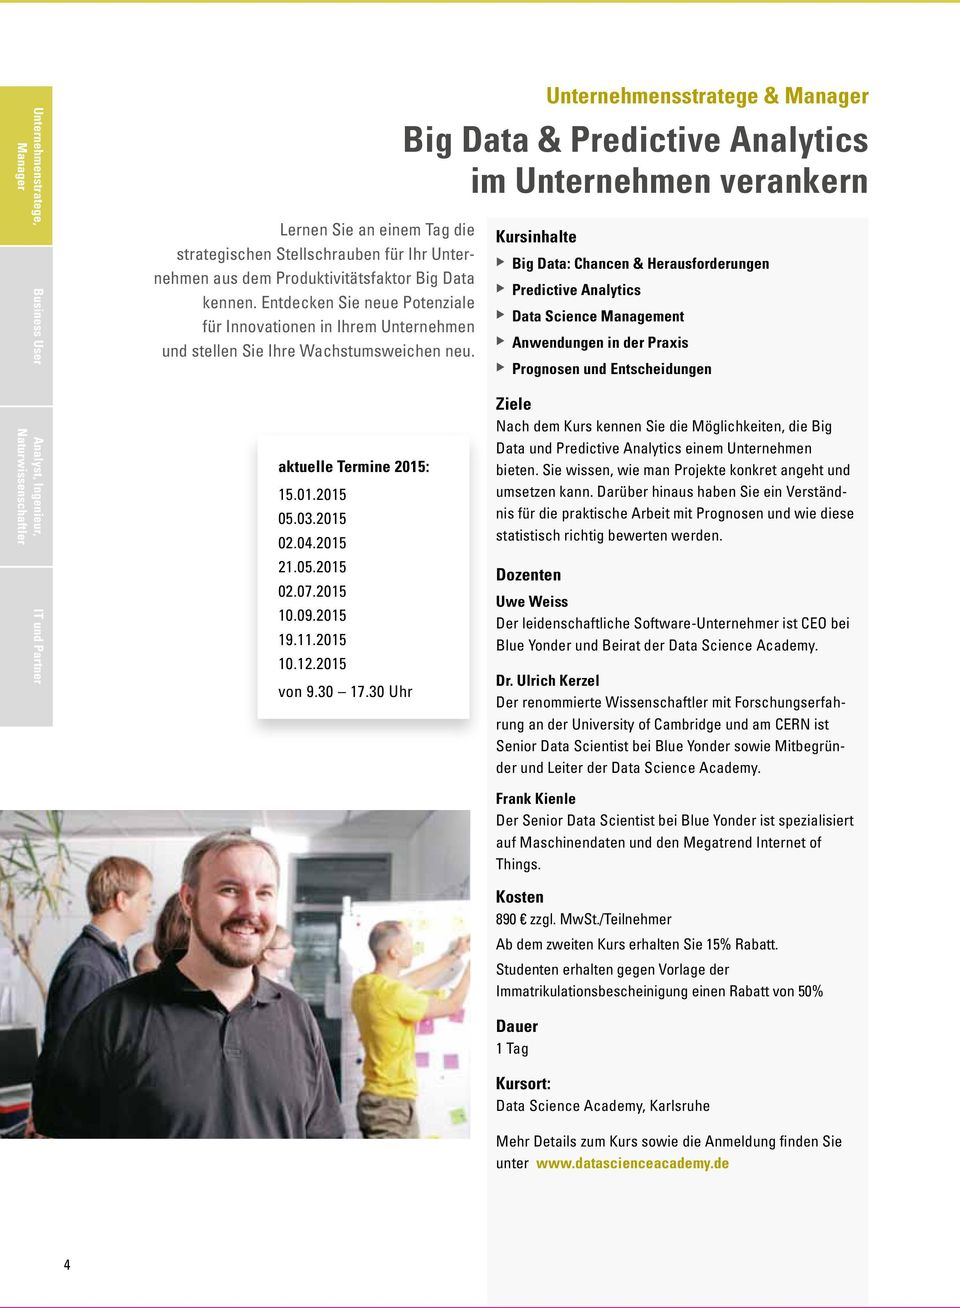 2015 Unternehmensstratege & Big Data & Predictive Analytics im Unternehmen verankern u Big Data: Chancen & Herausforderungen u Predictive Analytics u Data Science Management u Anwendungen in der